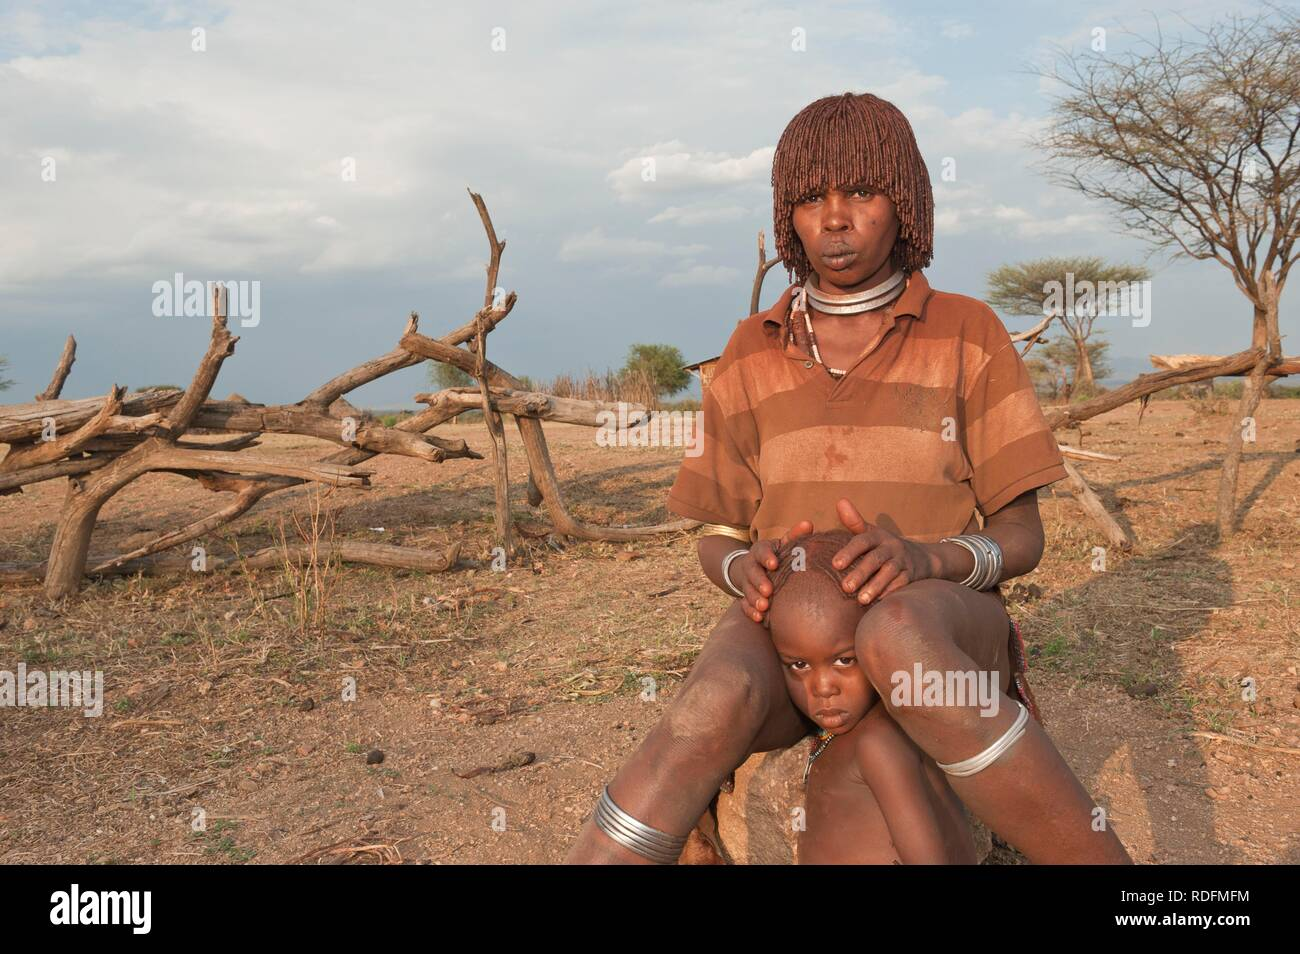 Young Hamar woman with traditional hairstyle with red clay in her hair and with her child, Omo river valley, Southern Ethiopia Stock Photo